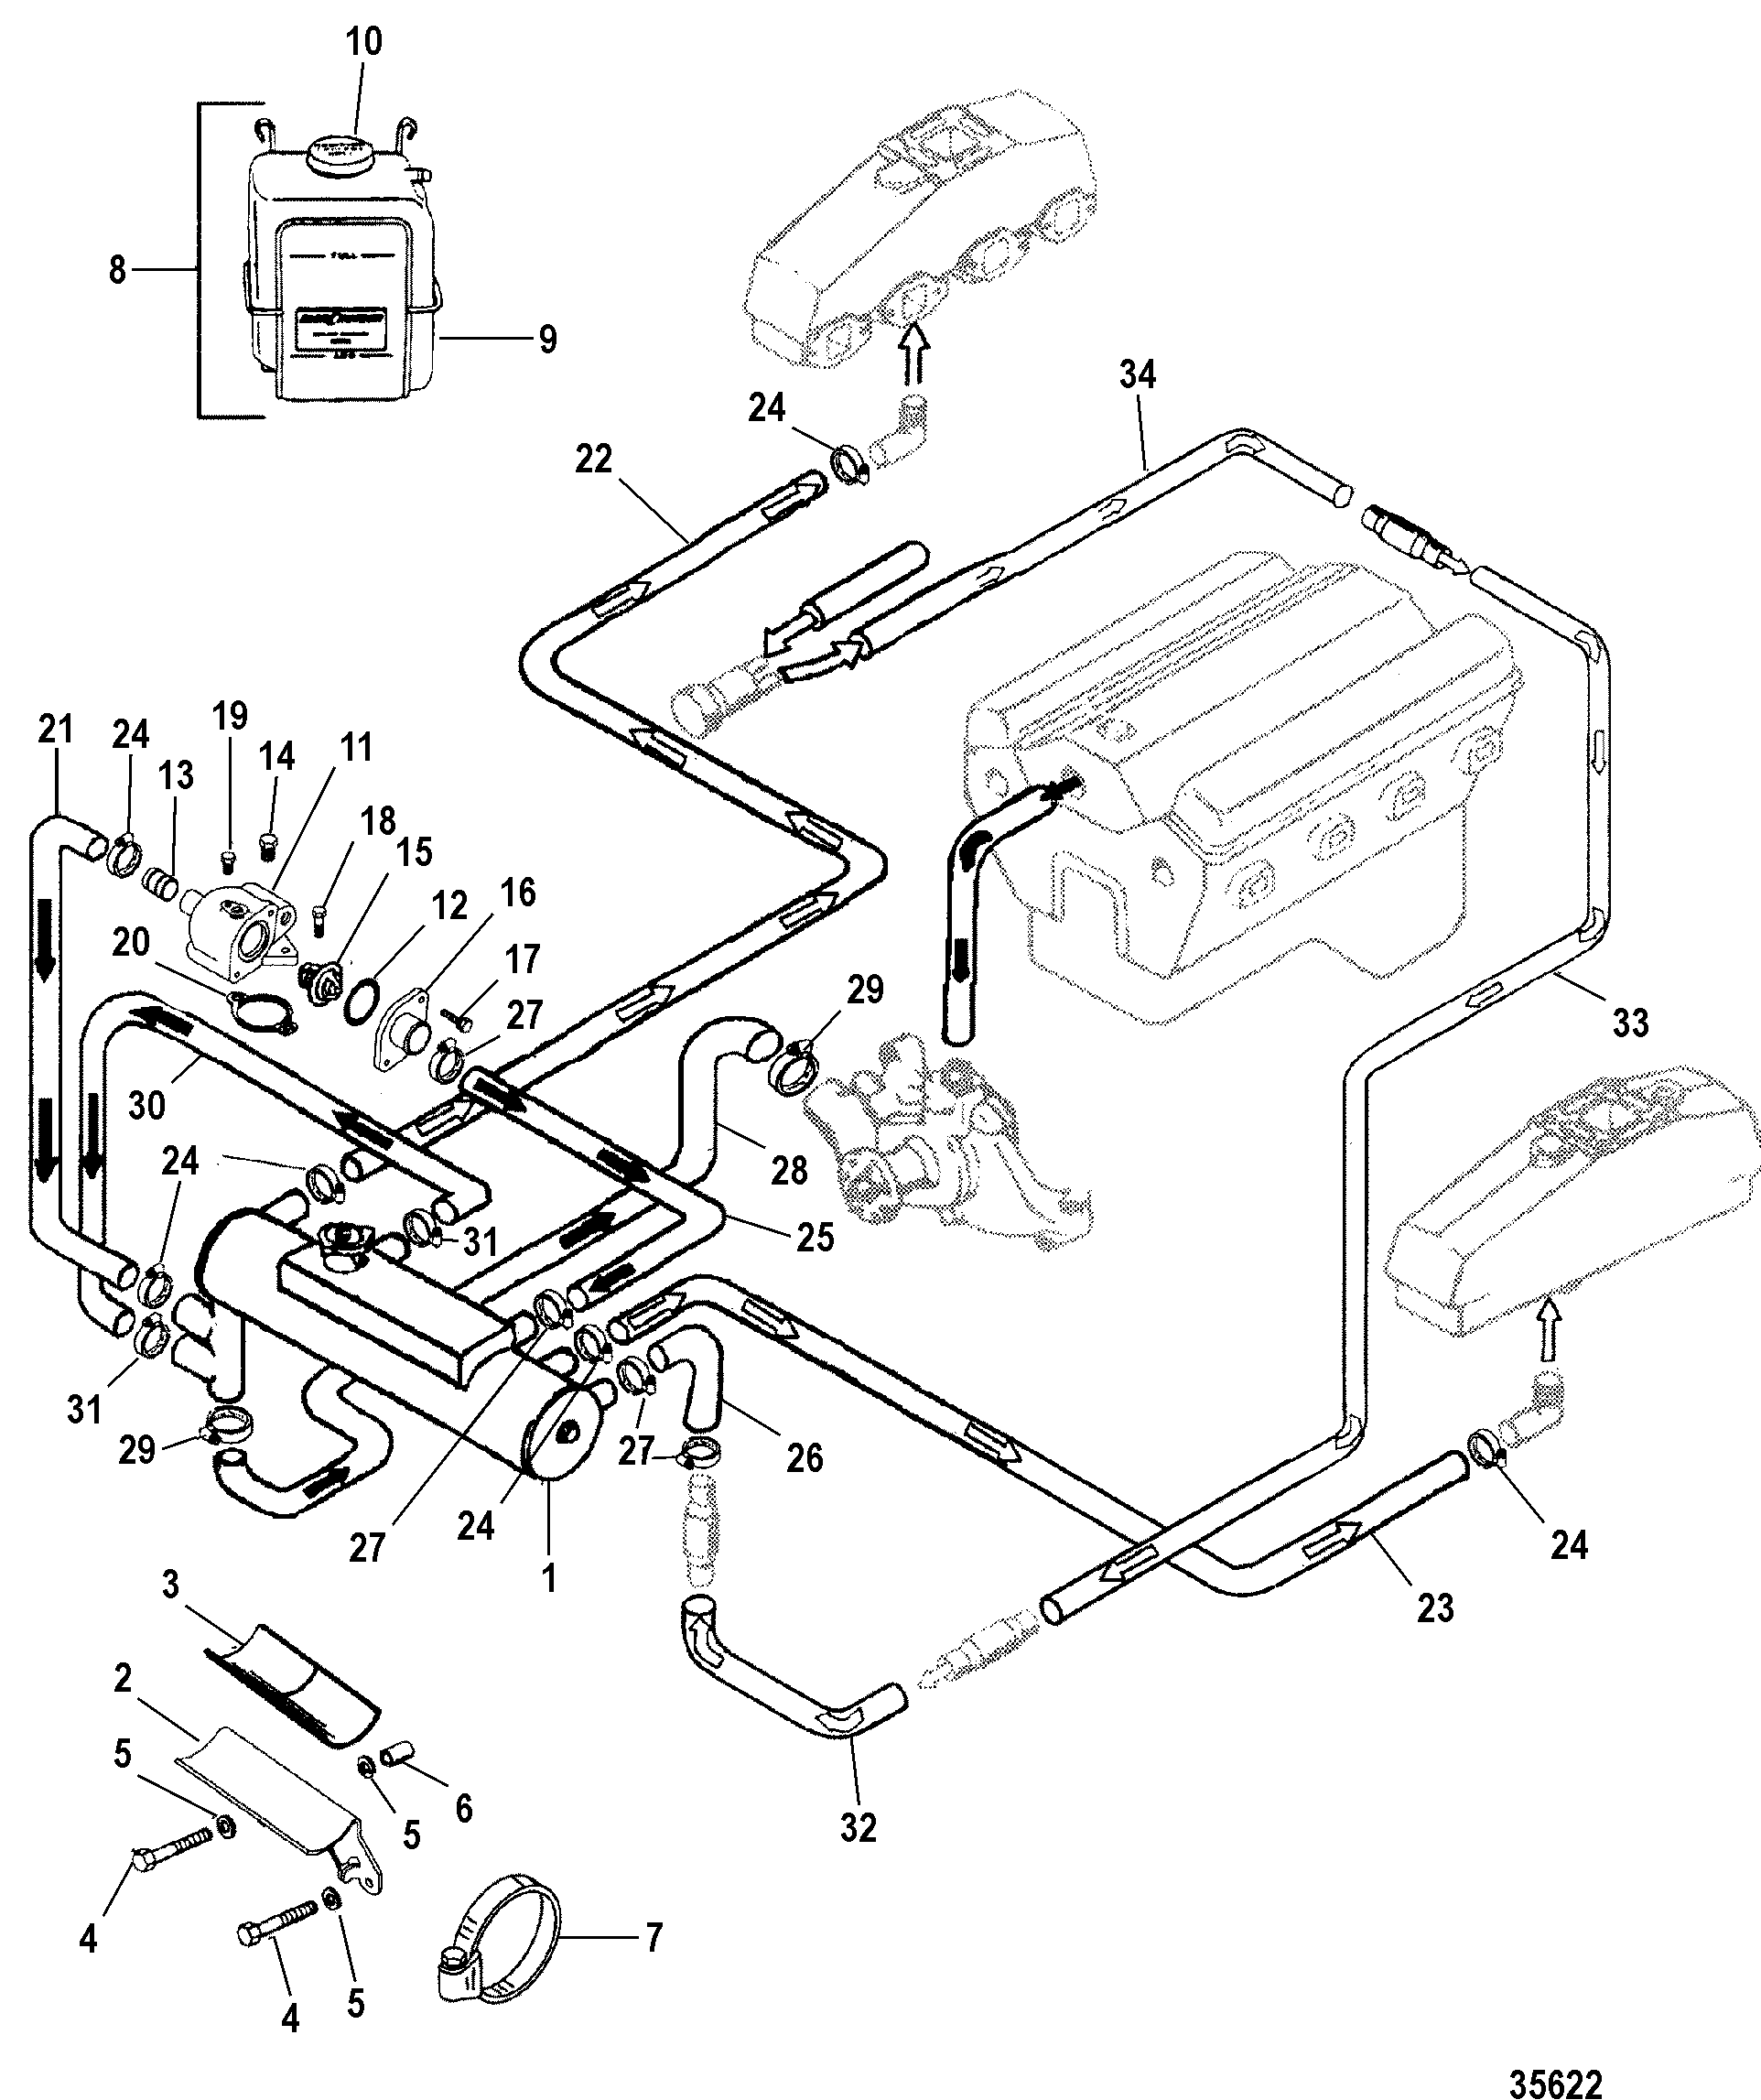 on 1977 Mercruiser Wiring Harness Diagram